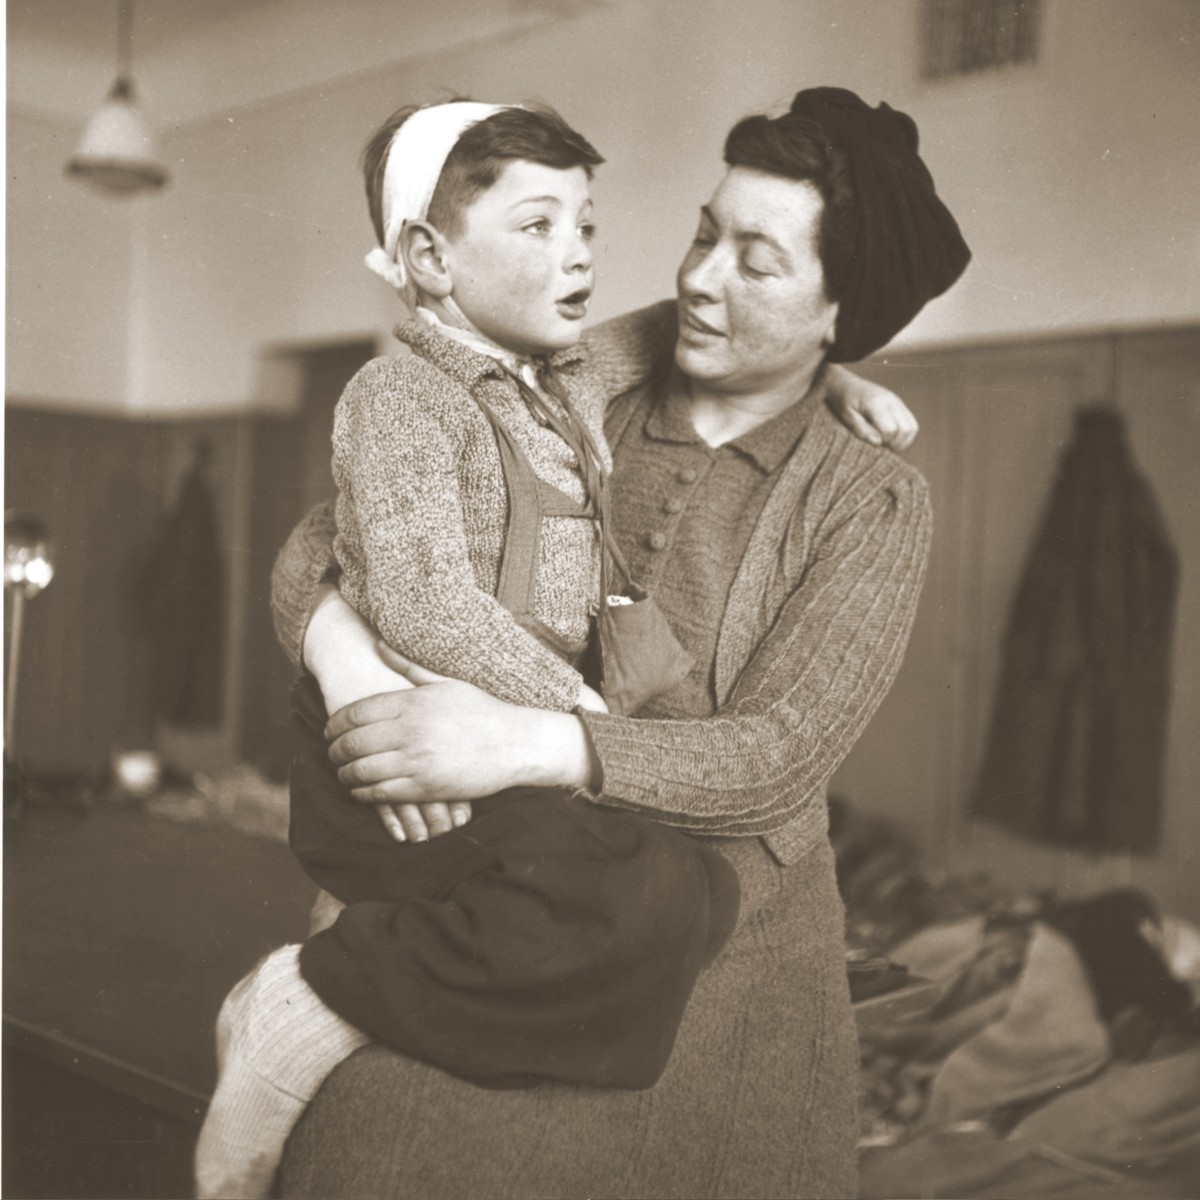 Portrait of a Jewish woman and child in the Hadwigschulhaus in St. Gallen.